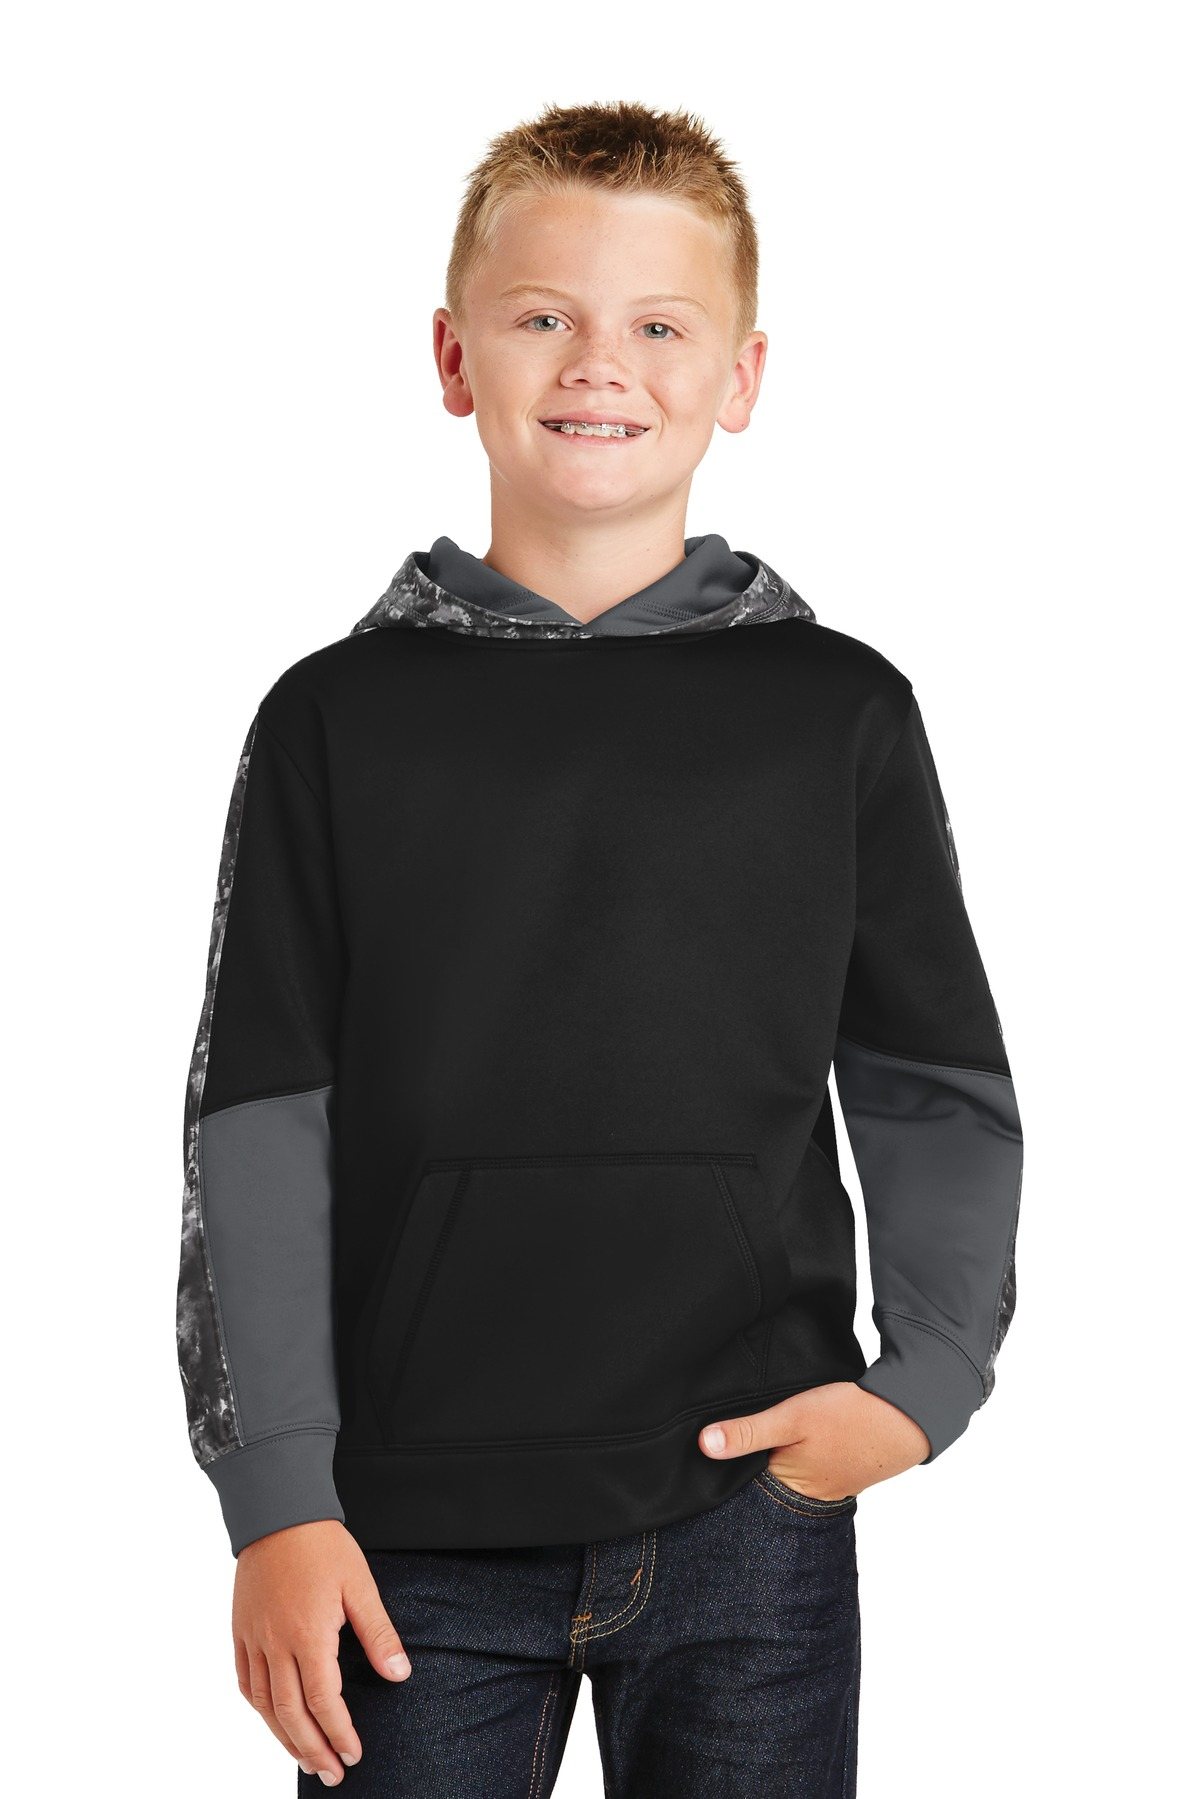 Sport-Tek ®  Youth Sport-Wick ®  Mineral Freeze Fleece Colorblock Hooded Pullover. YST231 - Black/ Black